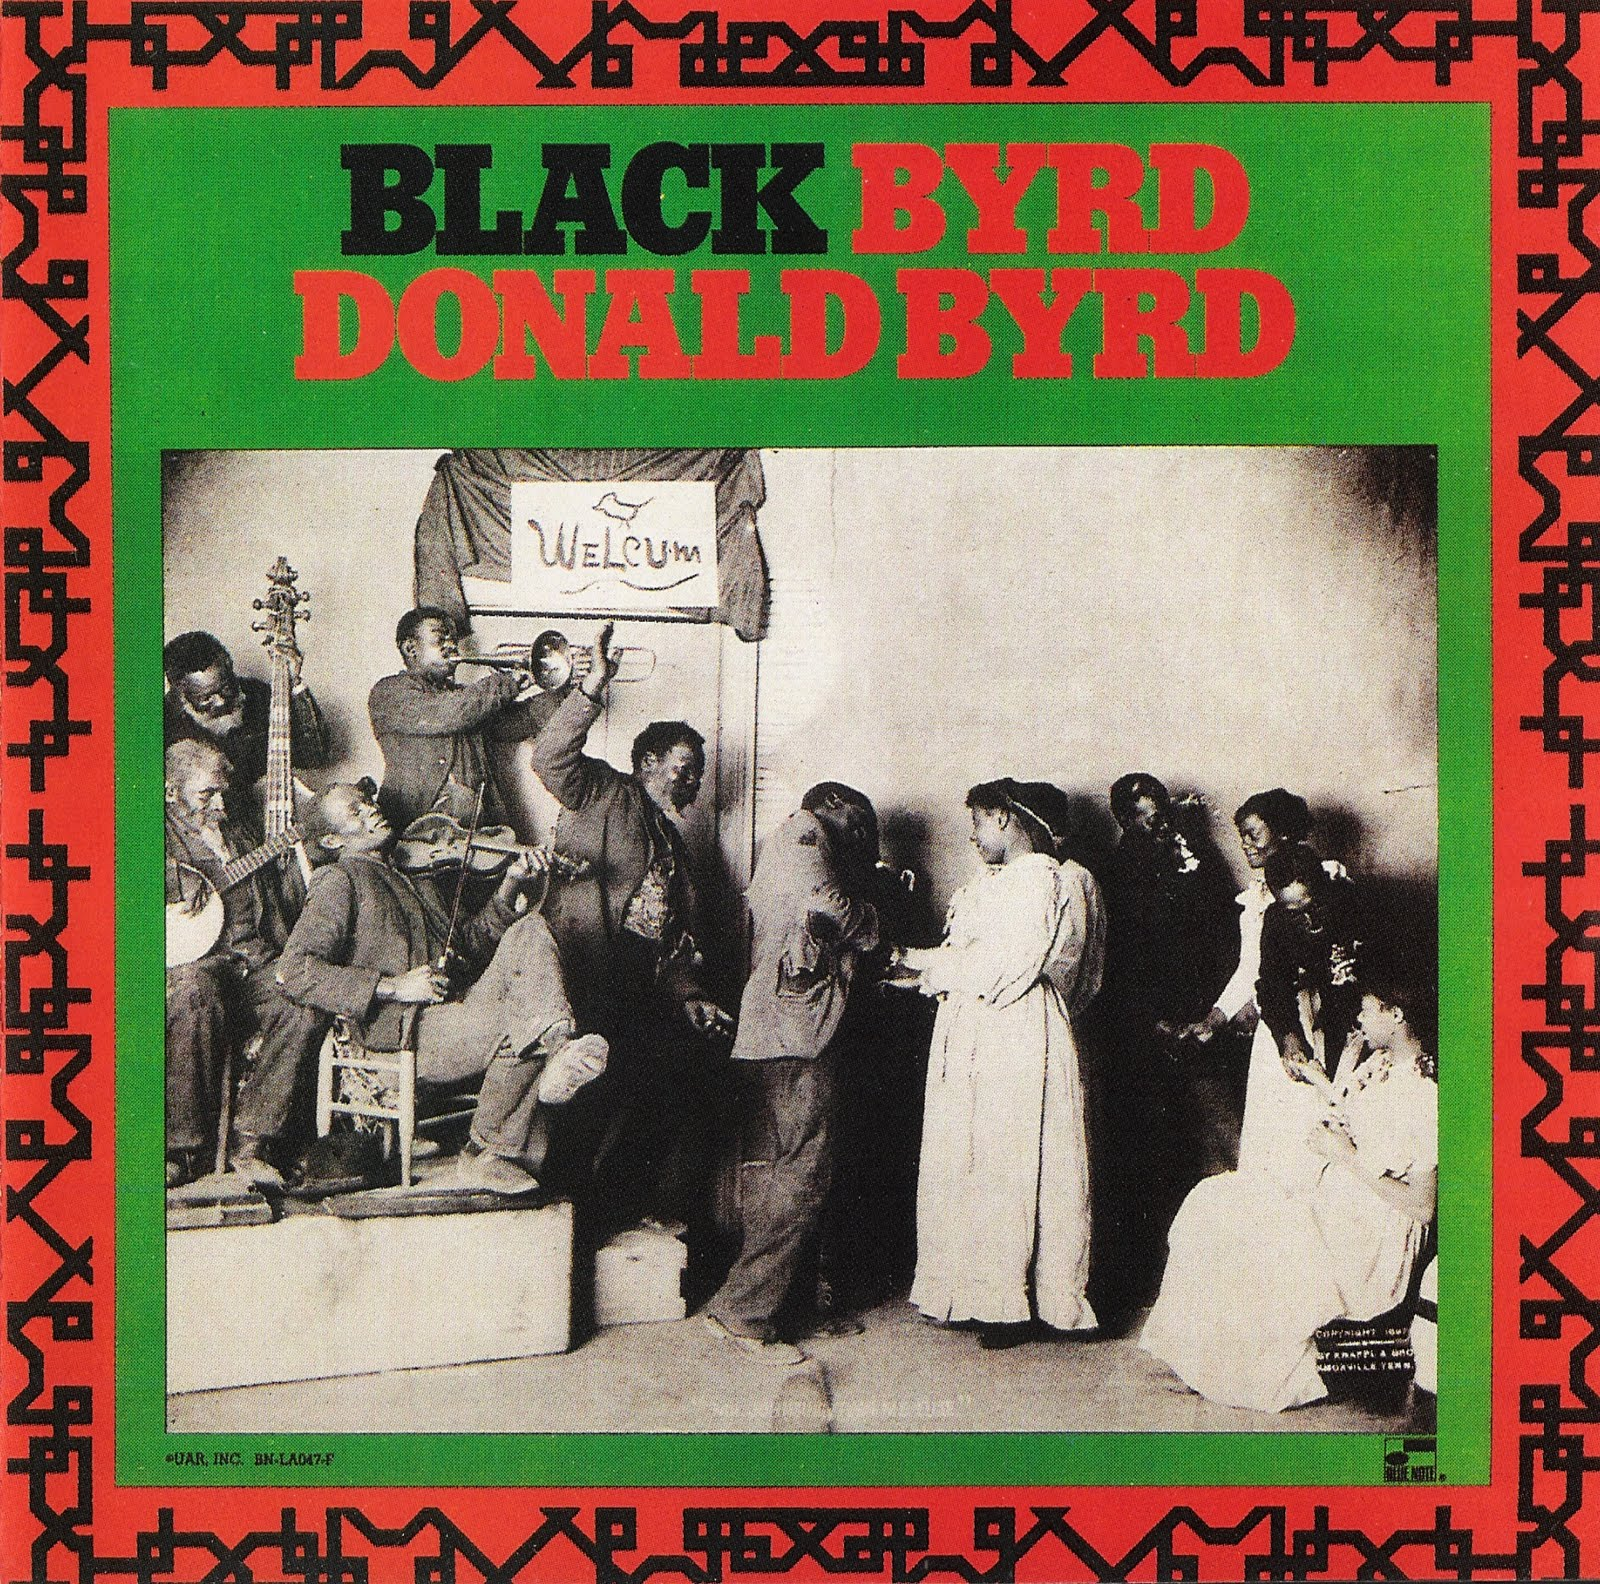 ... jazz and funk on his 1972 album on the corner donald byrd who died